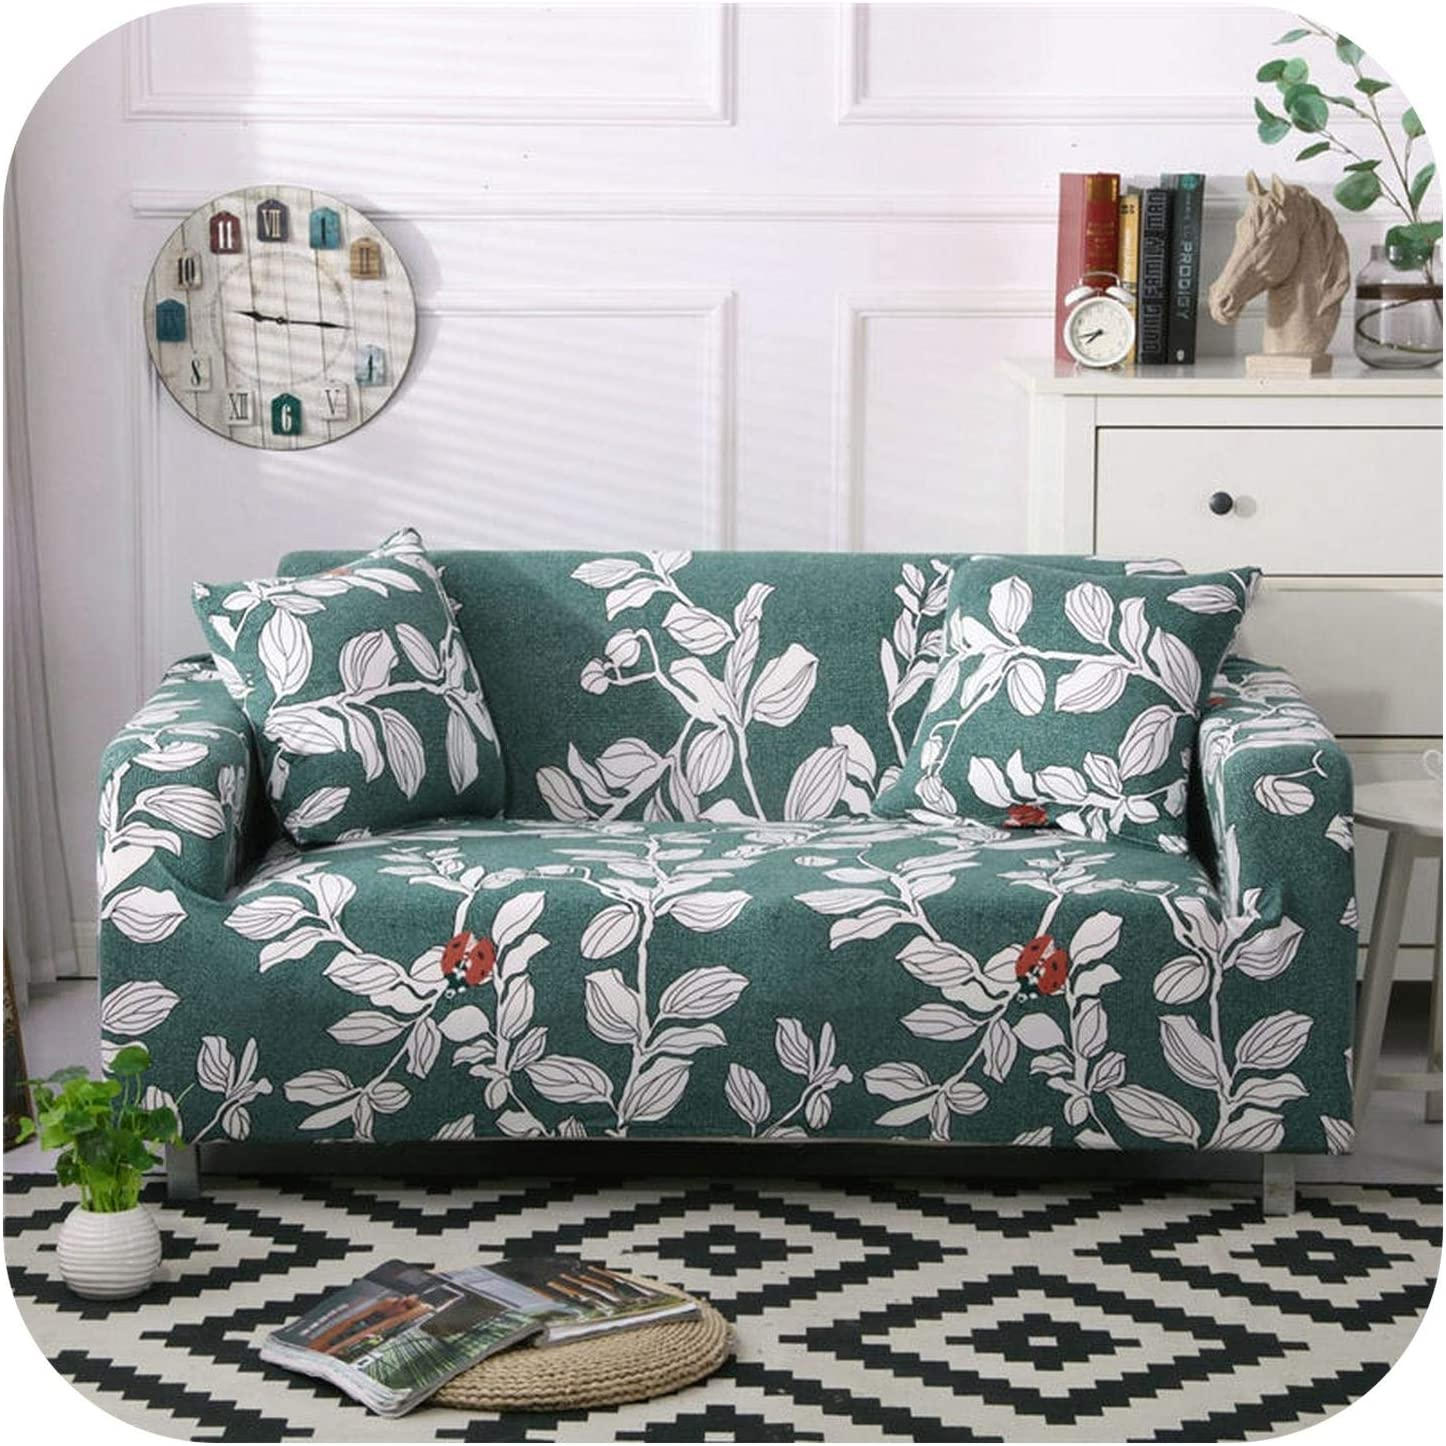 FAT SHEEP Pmxxy Floral Printing Cover Sofa Max 89% OFF Stretch Furni Elastic Limited price sale